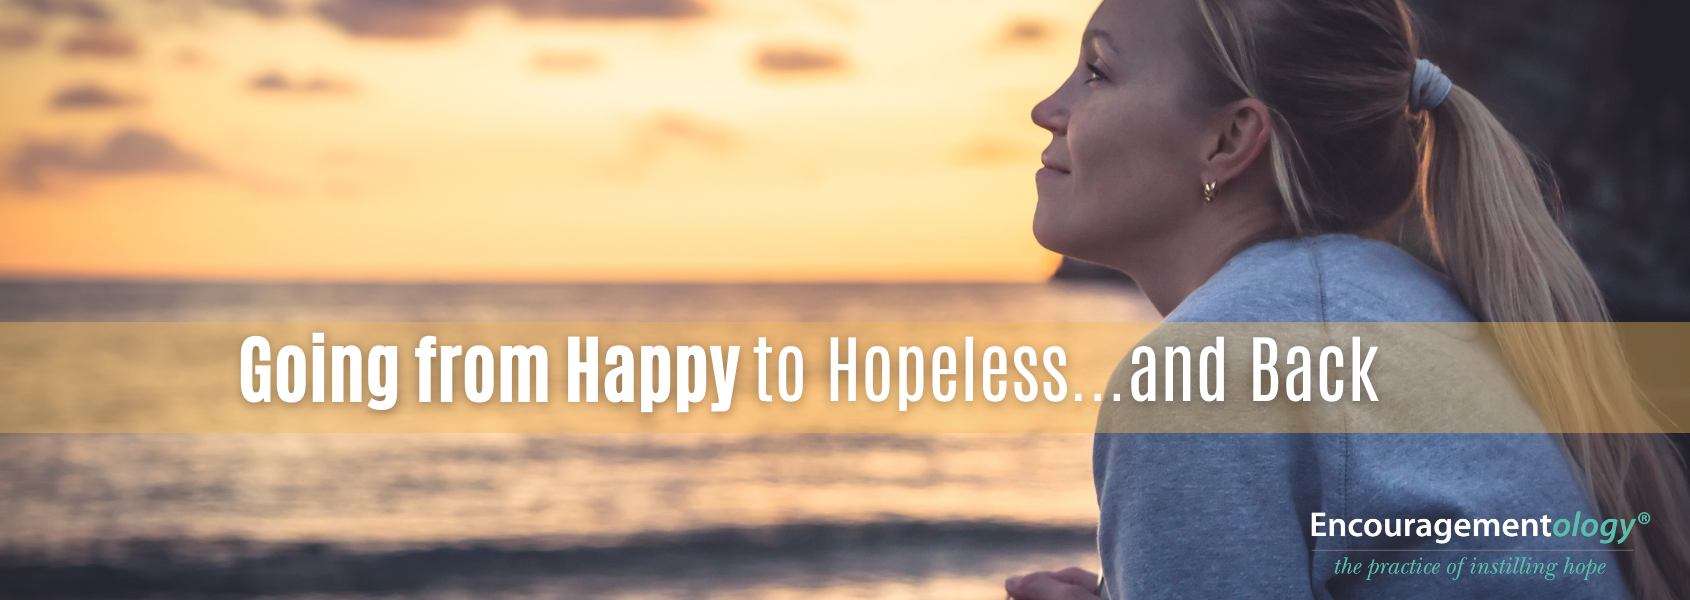 Going from Happy to Hopeless...and Back